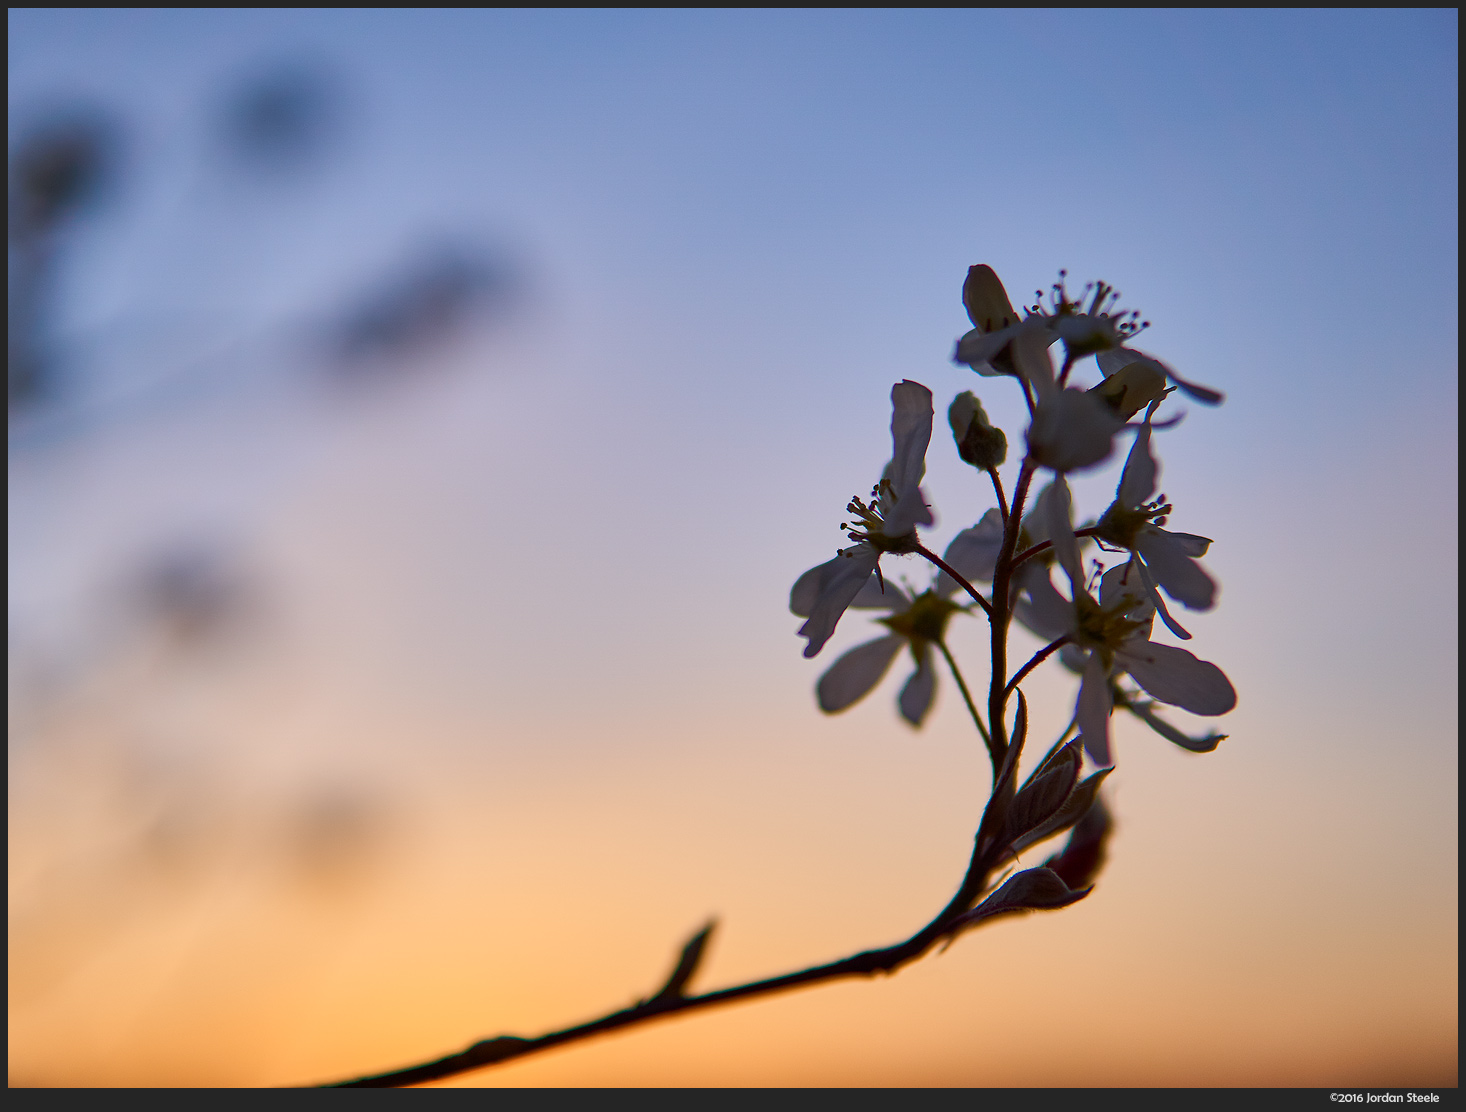 Blossoms at Sunset - Sony a6000 with Sigma 30mm f/1.4 DC DN @ f/1.7